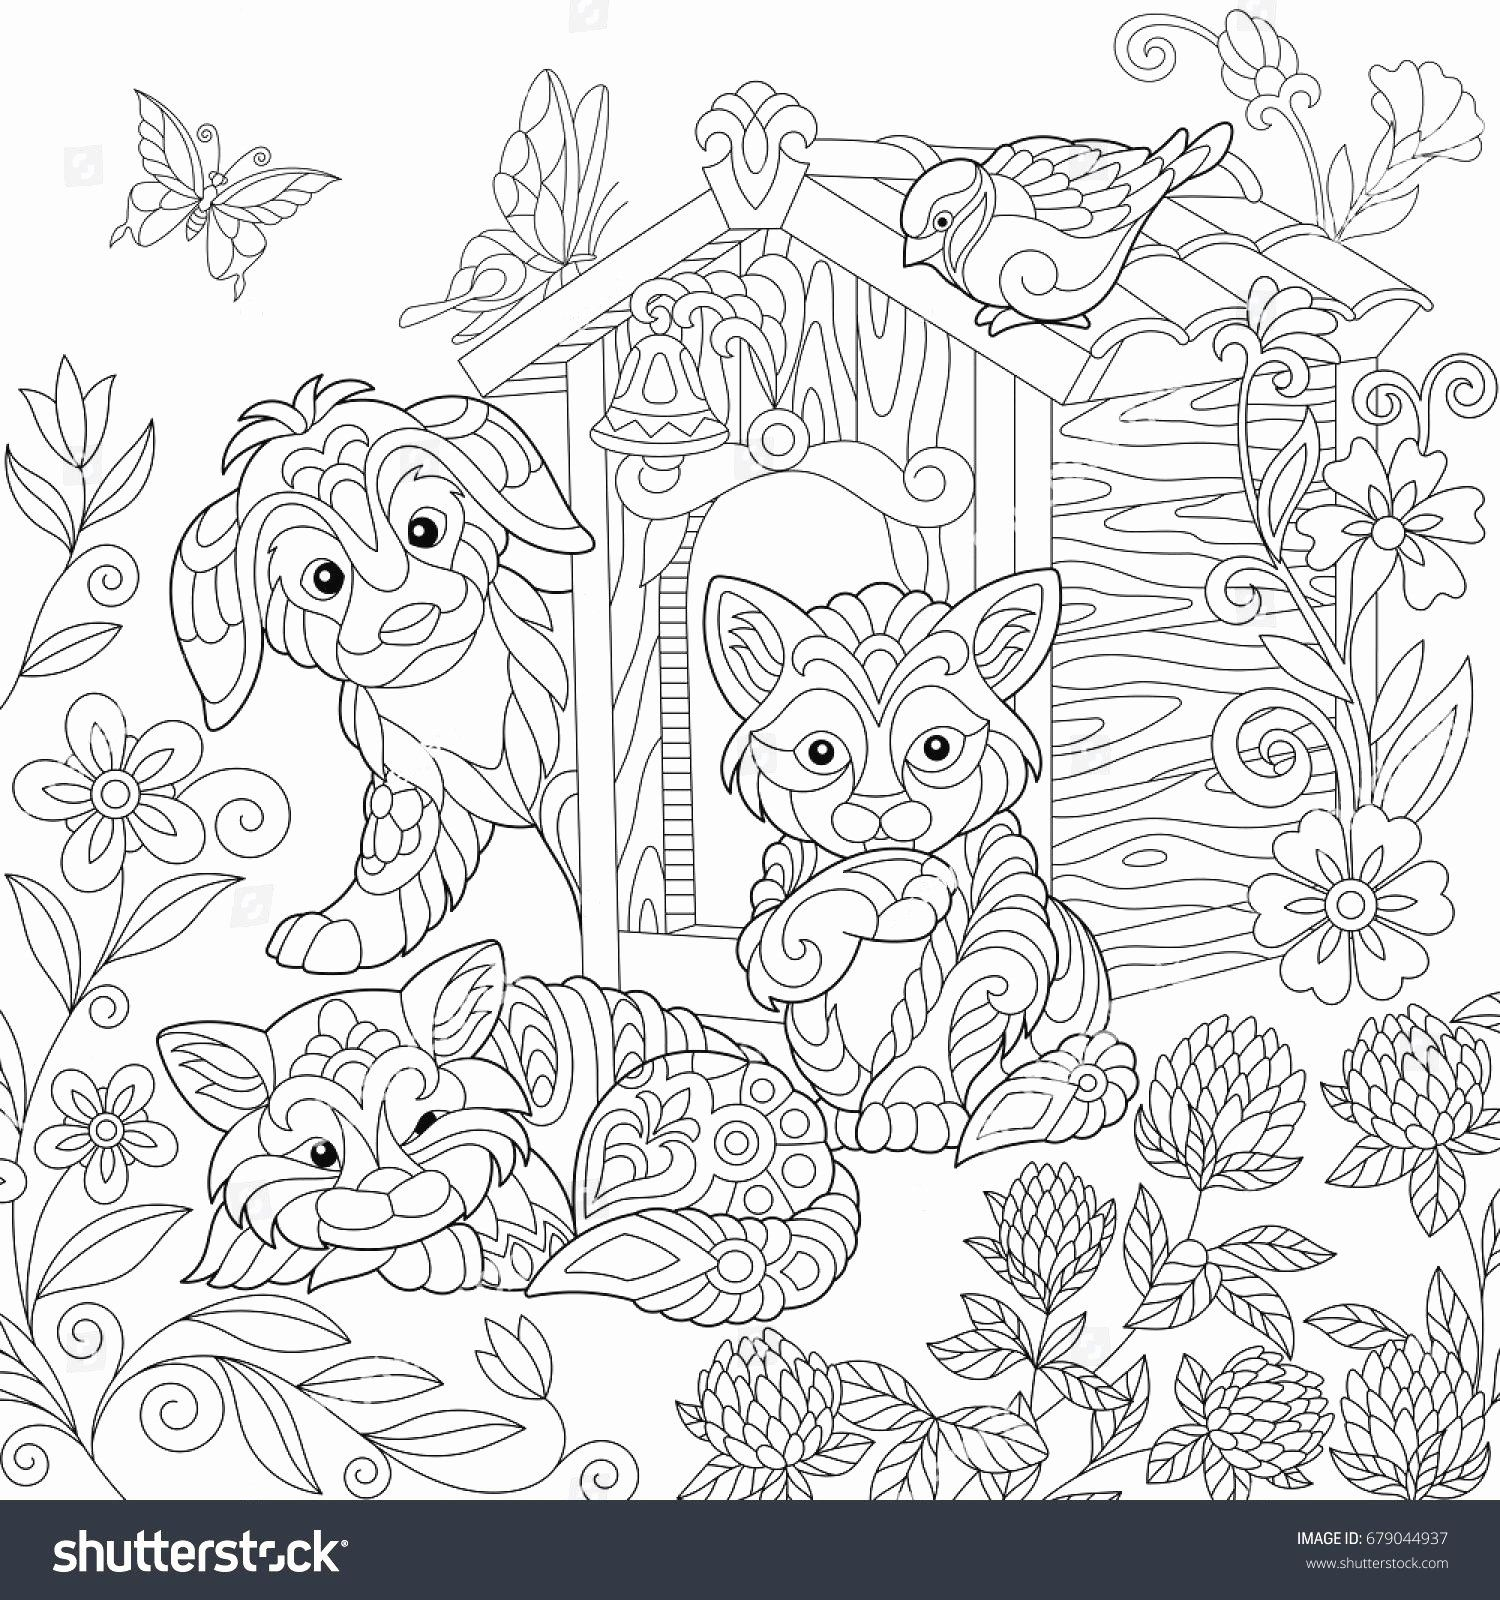 Cat Head Coloring Page Beautiful Awesome Banana Bread Coloring